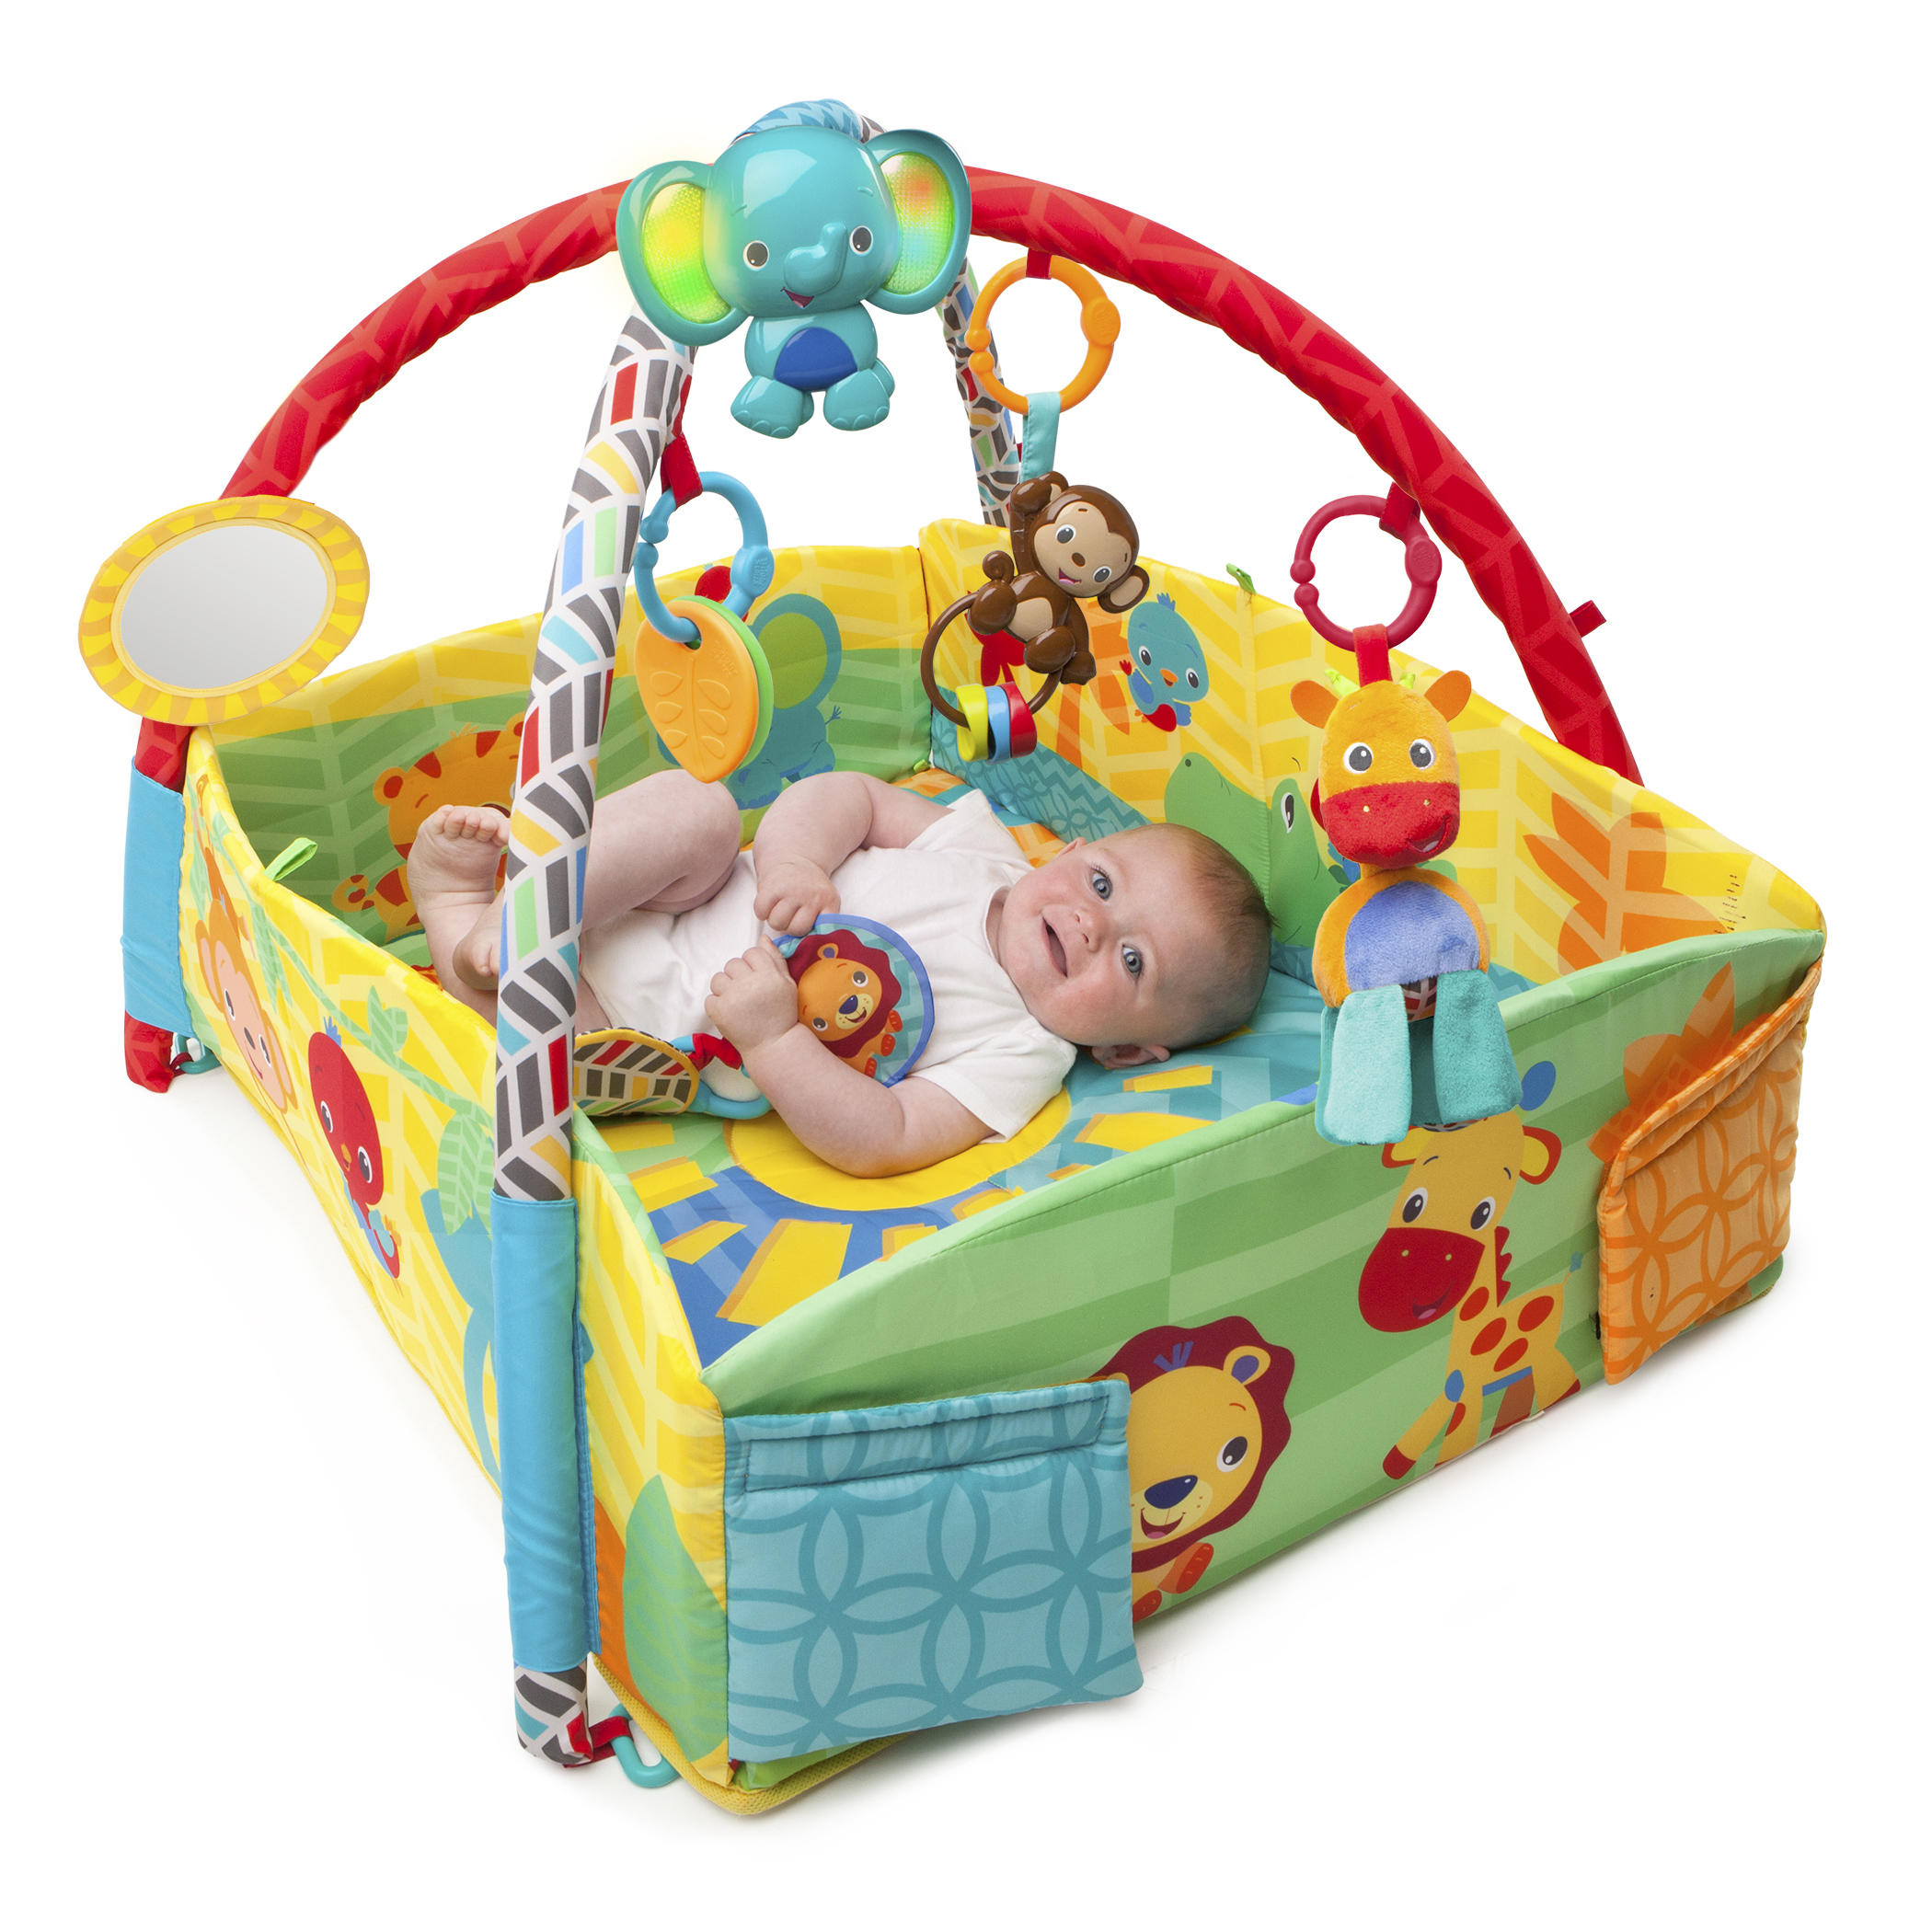 Sunny Safari™ Baby's Play Place™ Activity Gym